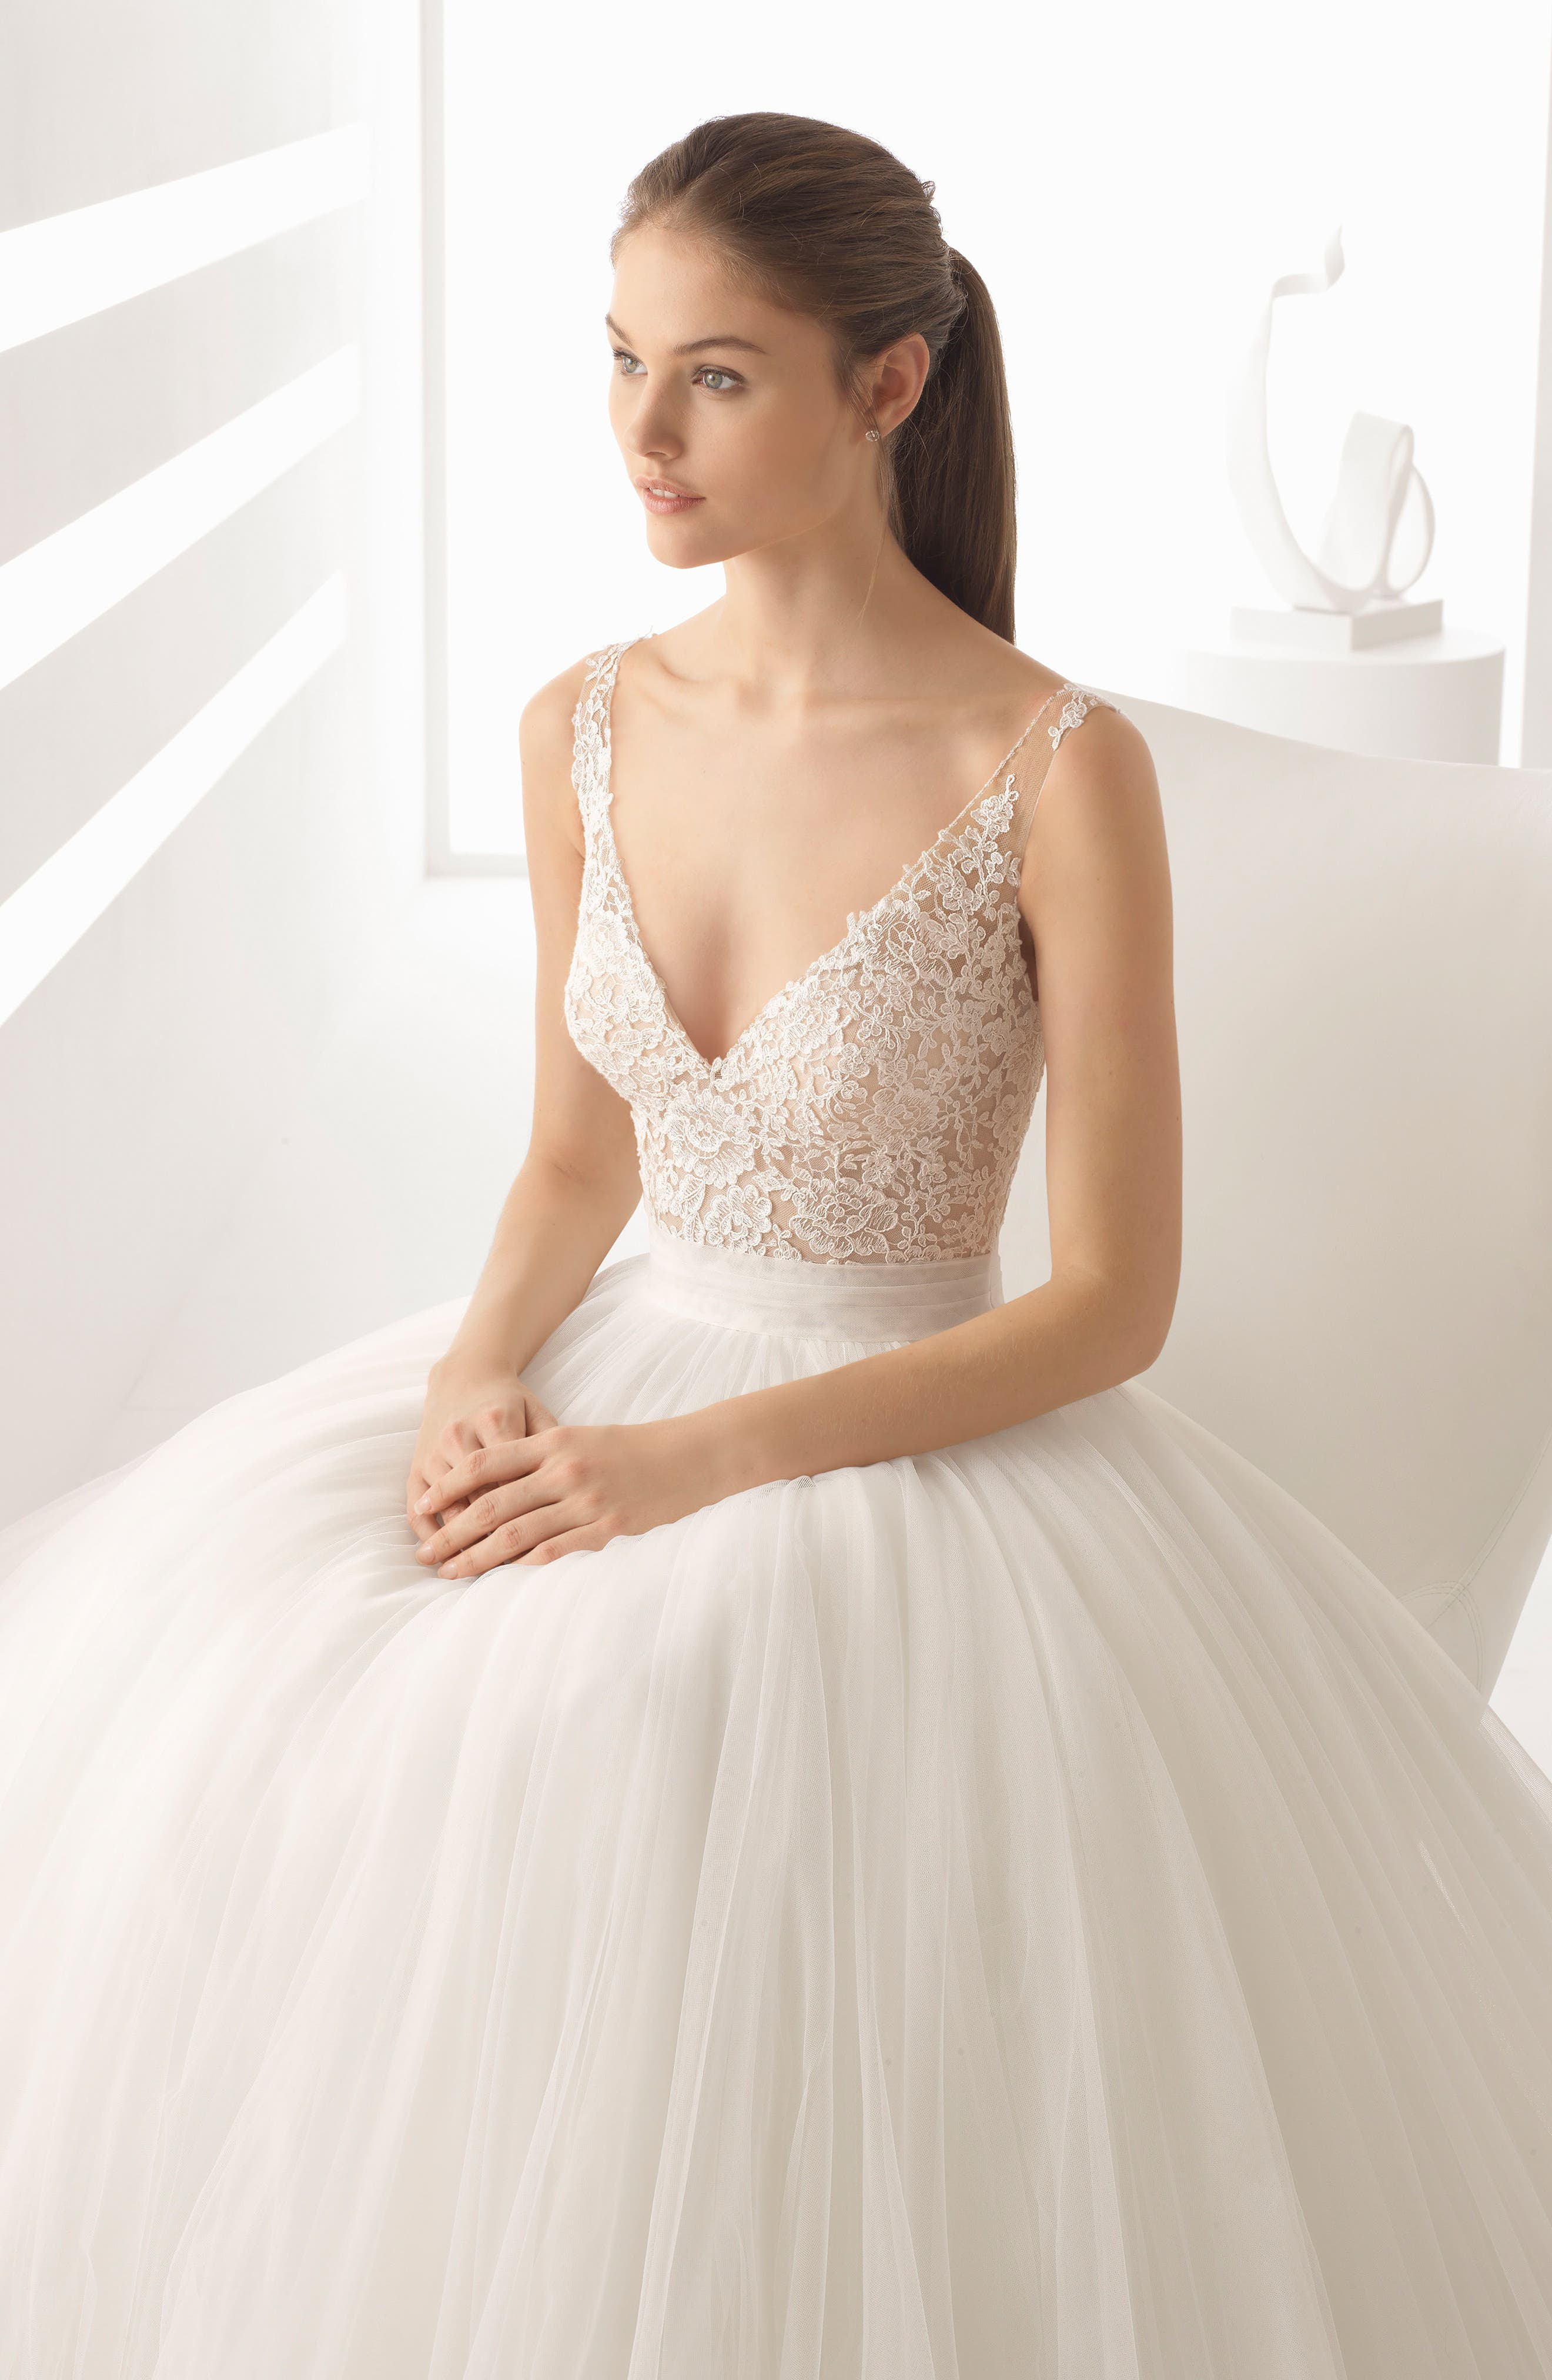 Alejo V-Neck Lace & Tulle Ballgown,                             Alternate thumbnail 3, color,                             Natural/Nude